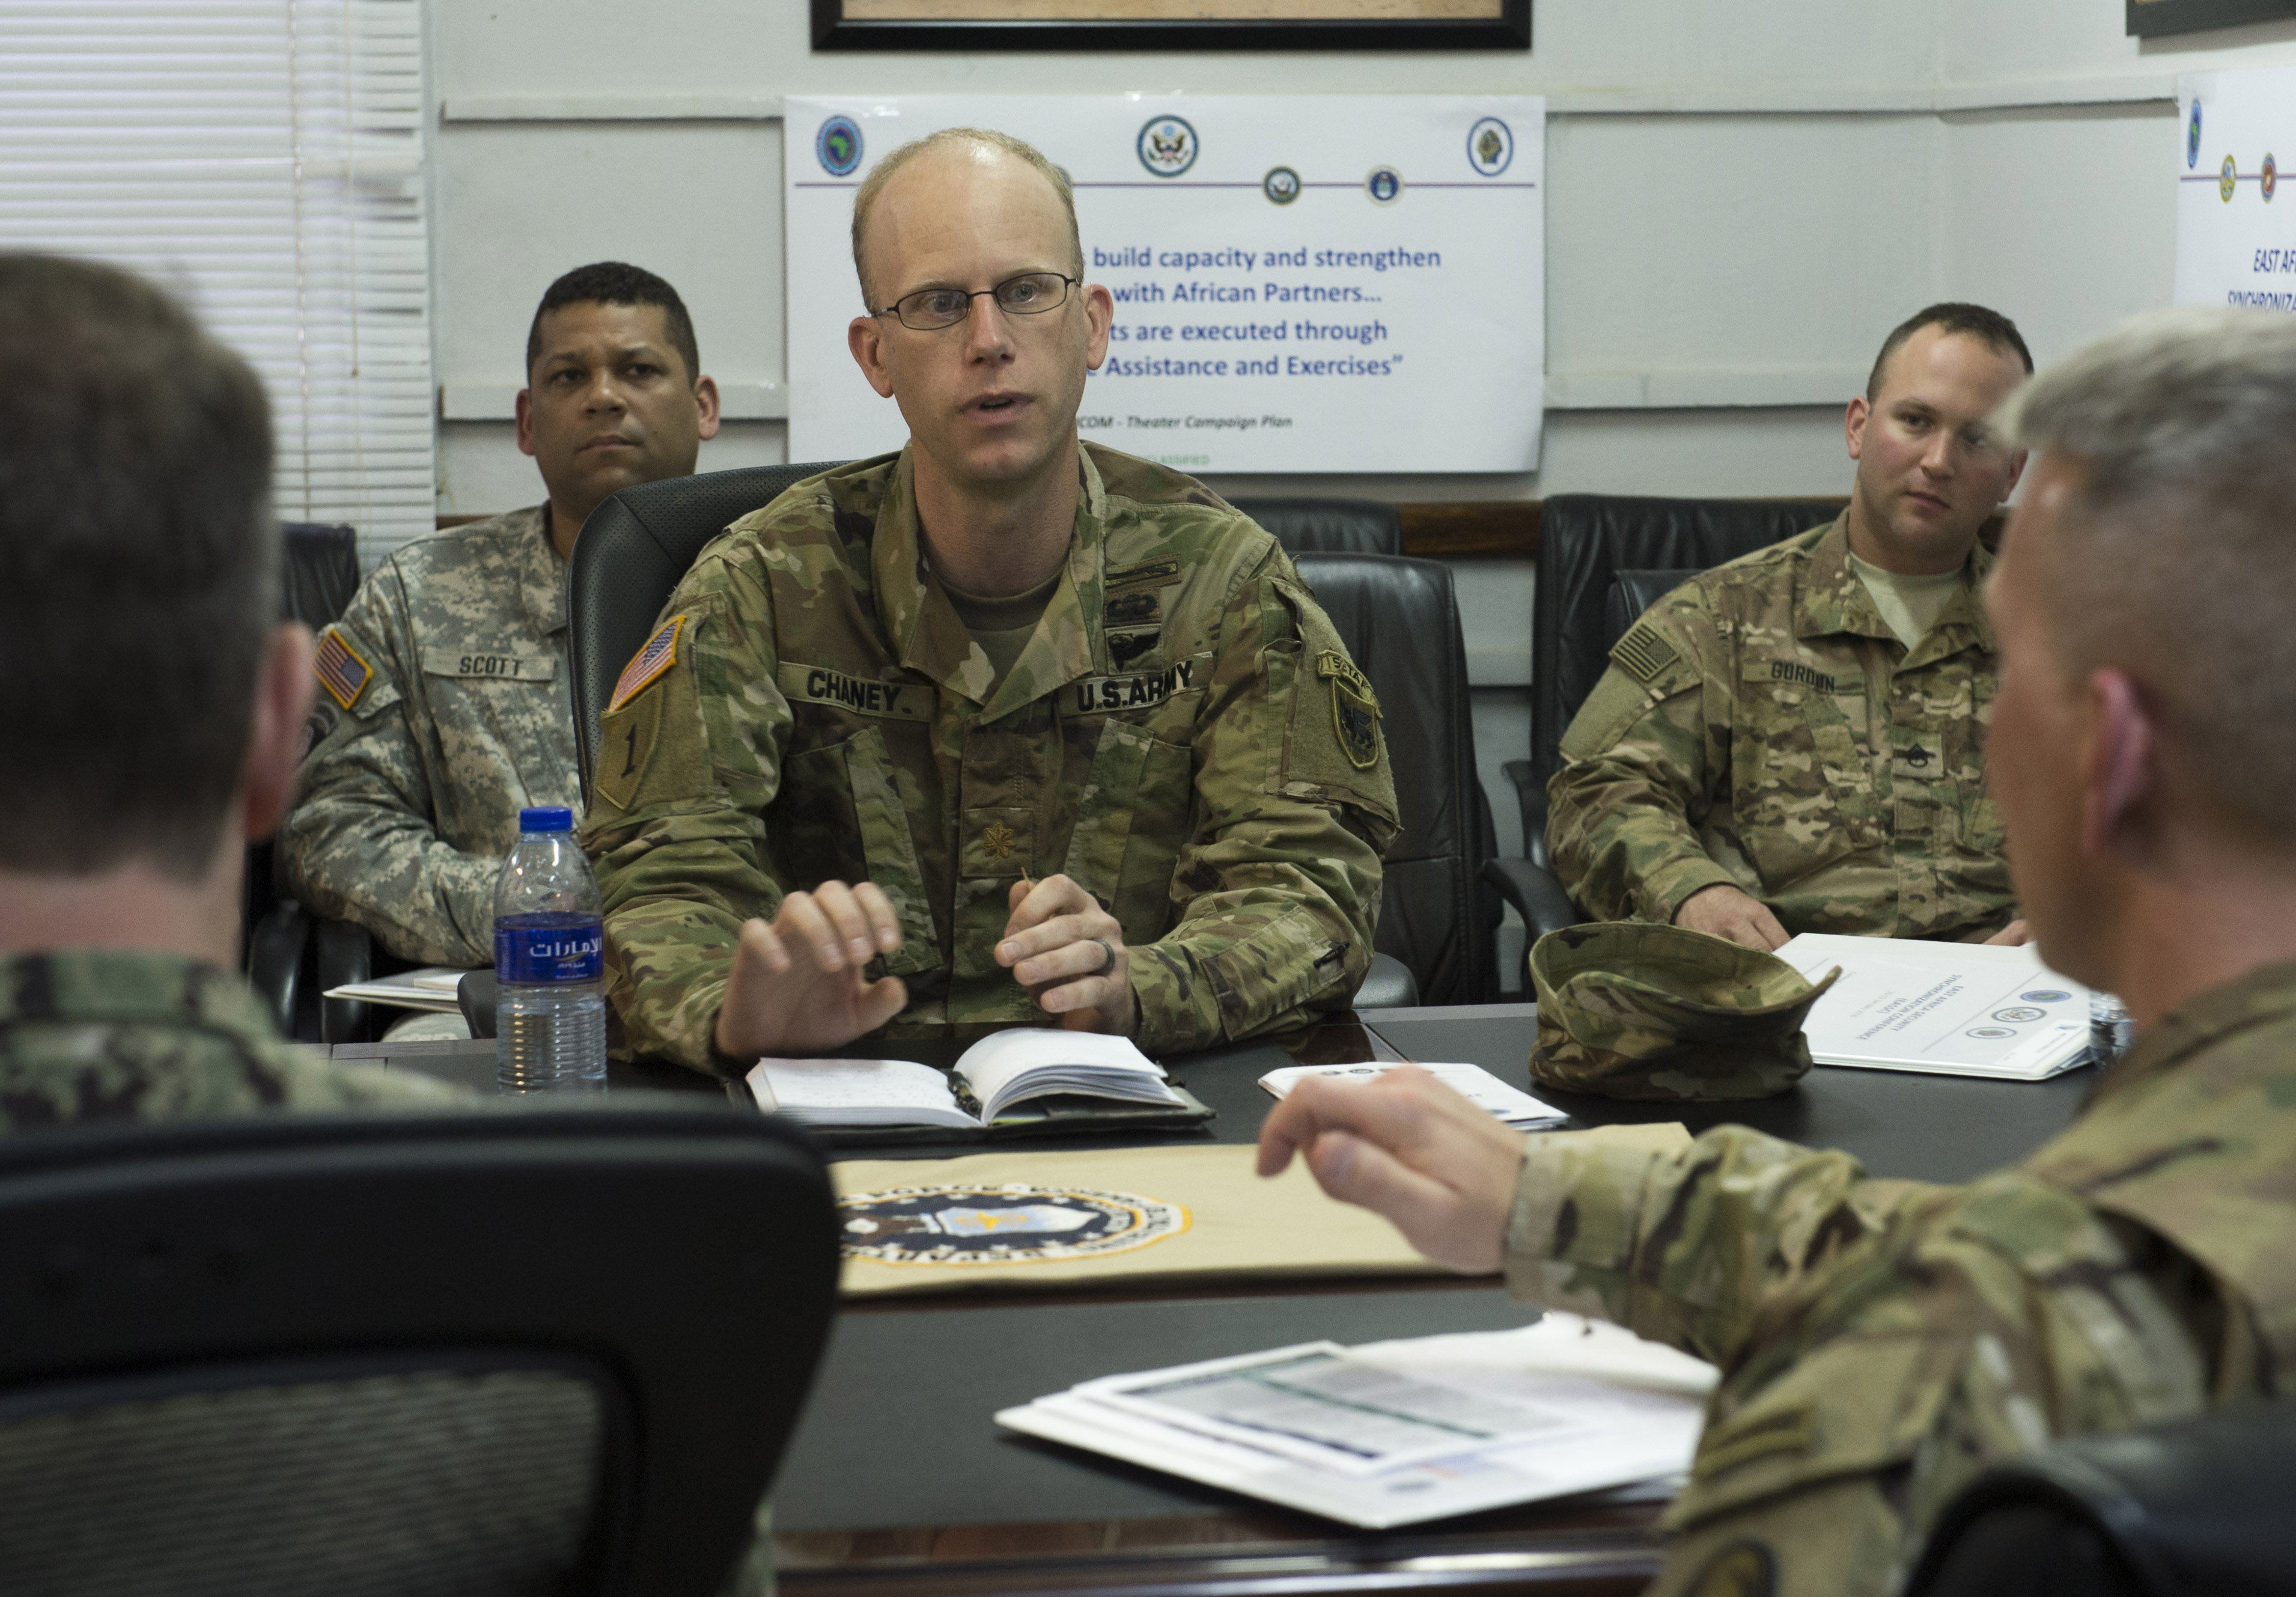 Military members in a working group discuss Africa Contingency Operations Training and Assistance during the East Africa Security Synchronization Conference Jan. 21, 2016, at Camp Lemonnier, Djibouti. More than 70 U.S. embassy representatives from each East African country and organizations including the African Union, U.S. Africa Command, and AFRICOM components attended the event to kick start the process of synchronizing and prioritizing all activities in East Africa. (U.S. Air Force photo by Senior Airman Peter Thompson)